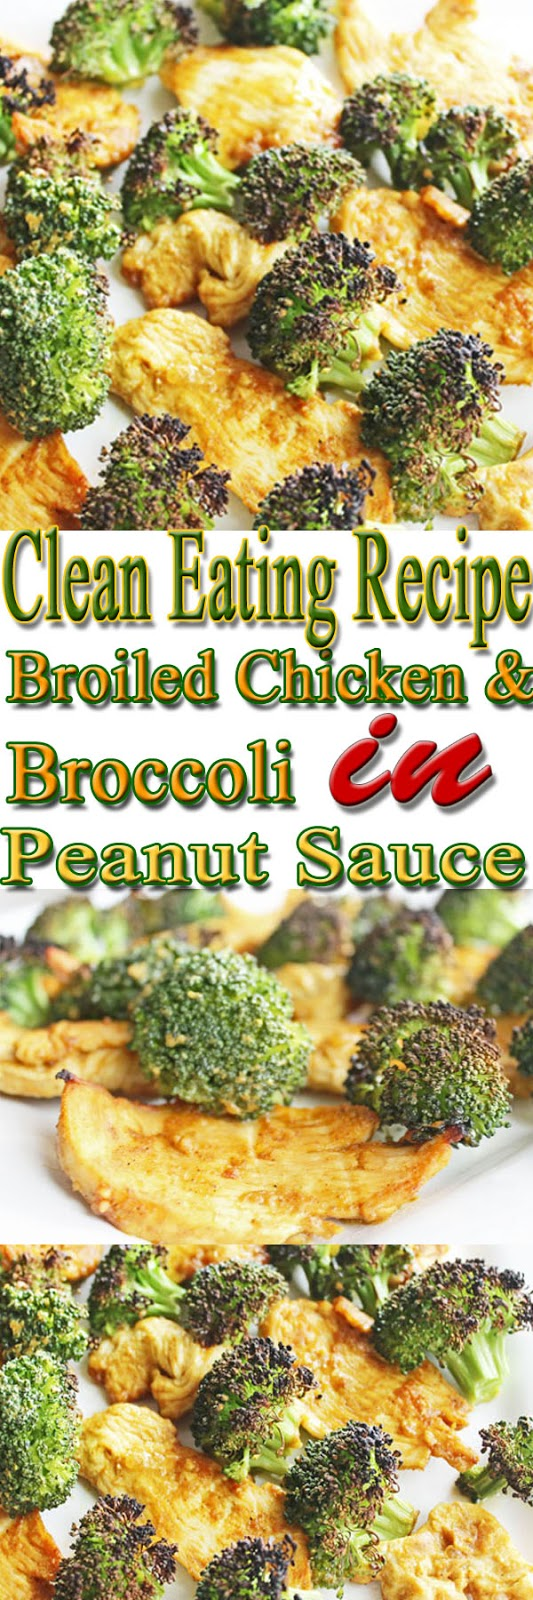 clean eating dinner recipe